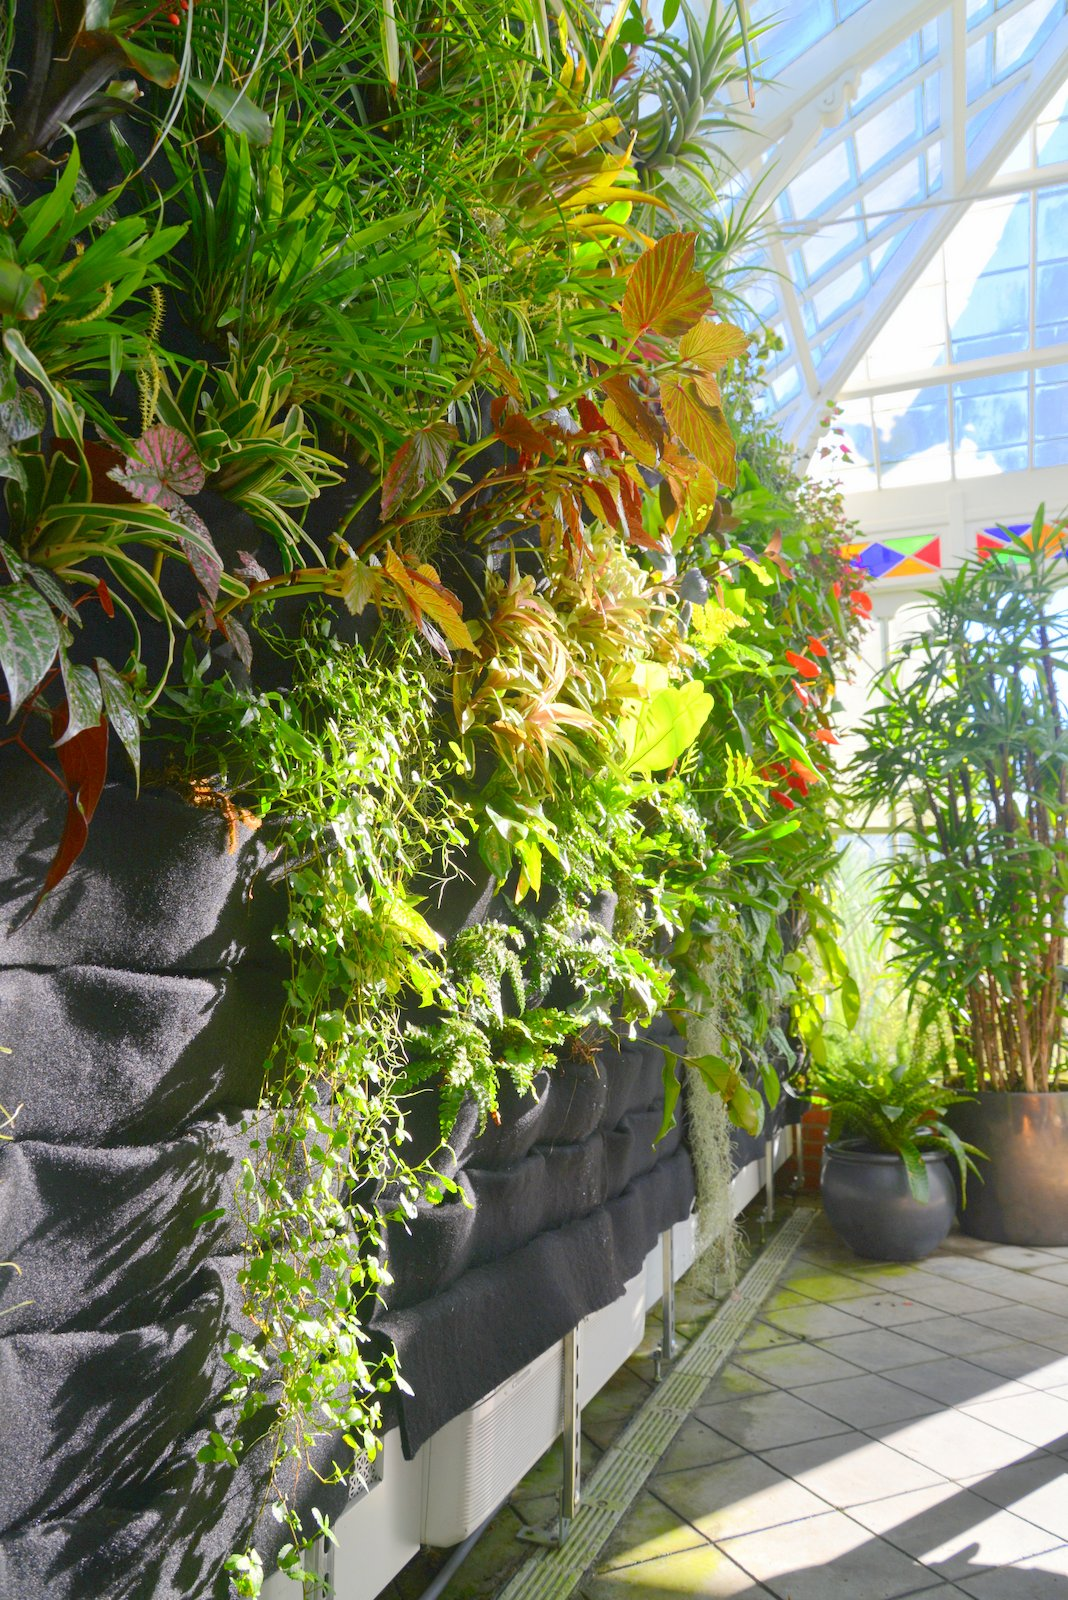 Vertikal Gardinen Plants On Walls Vertical Garden Systems Conservatory Of